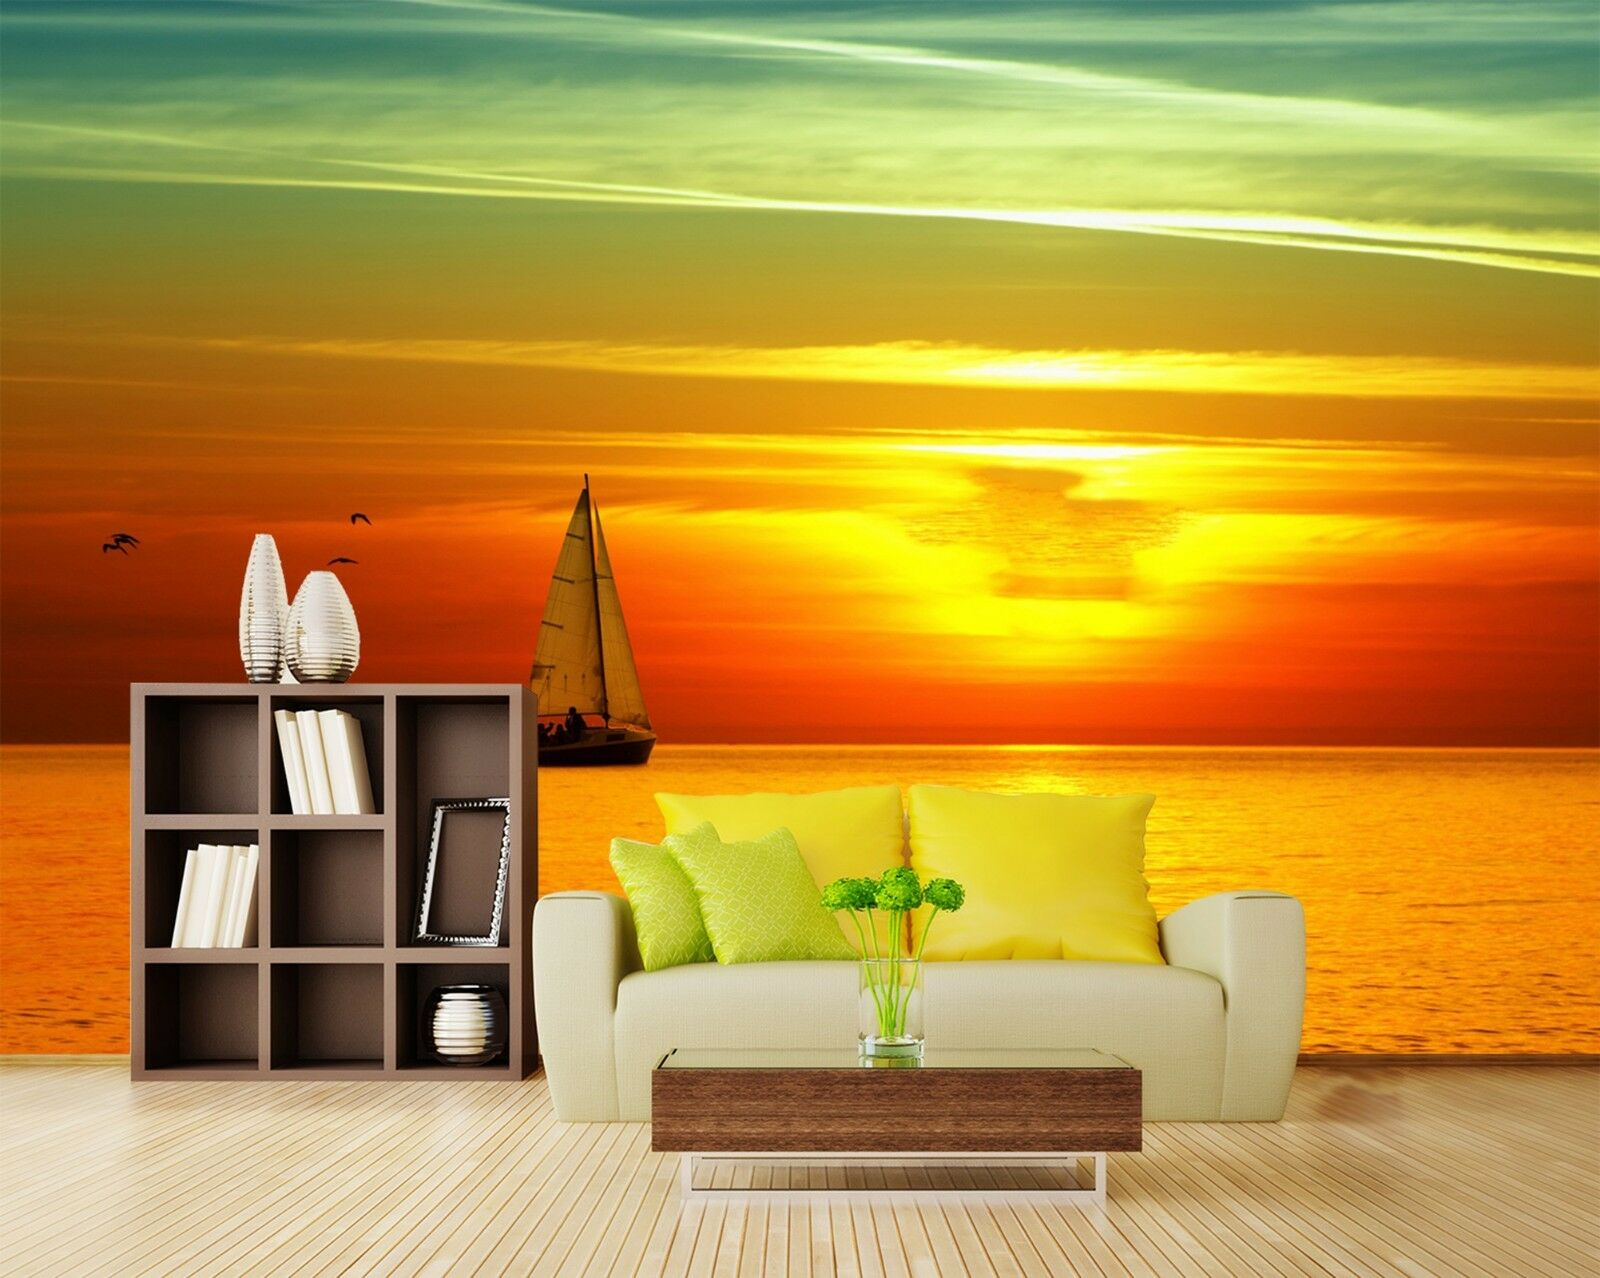 3D Sunset sailboat Wall Paper Print Decal Wall Deco Indoor wall Mural